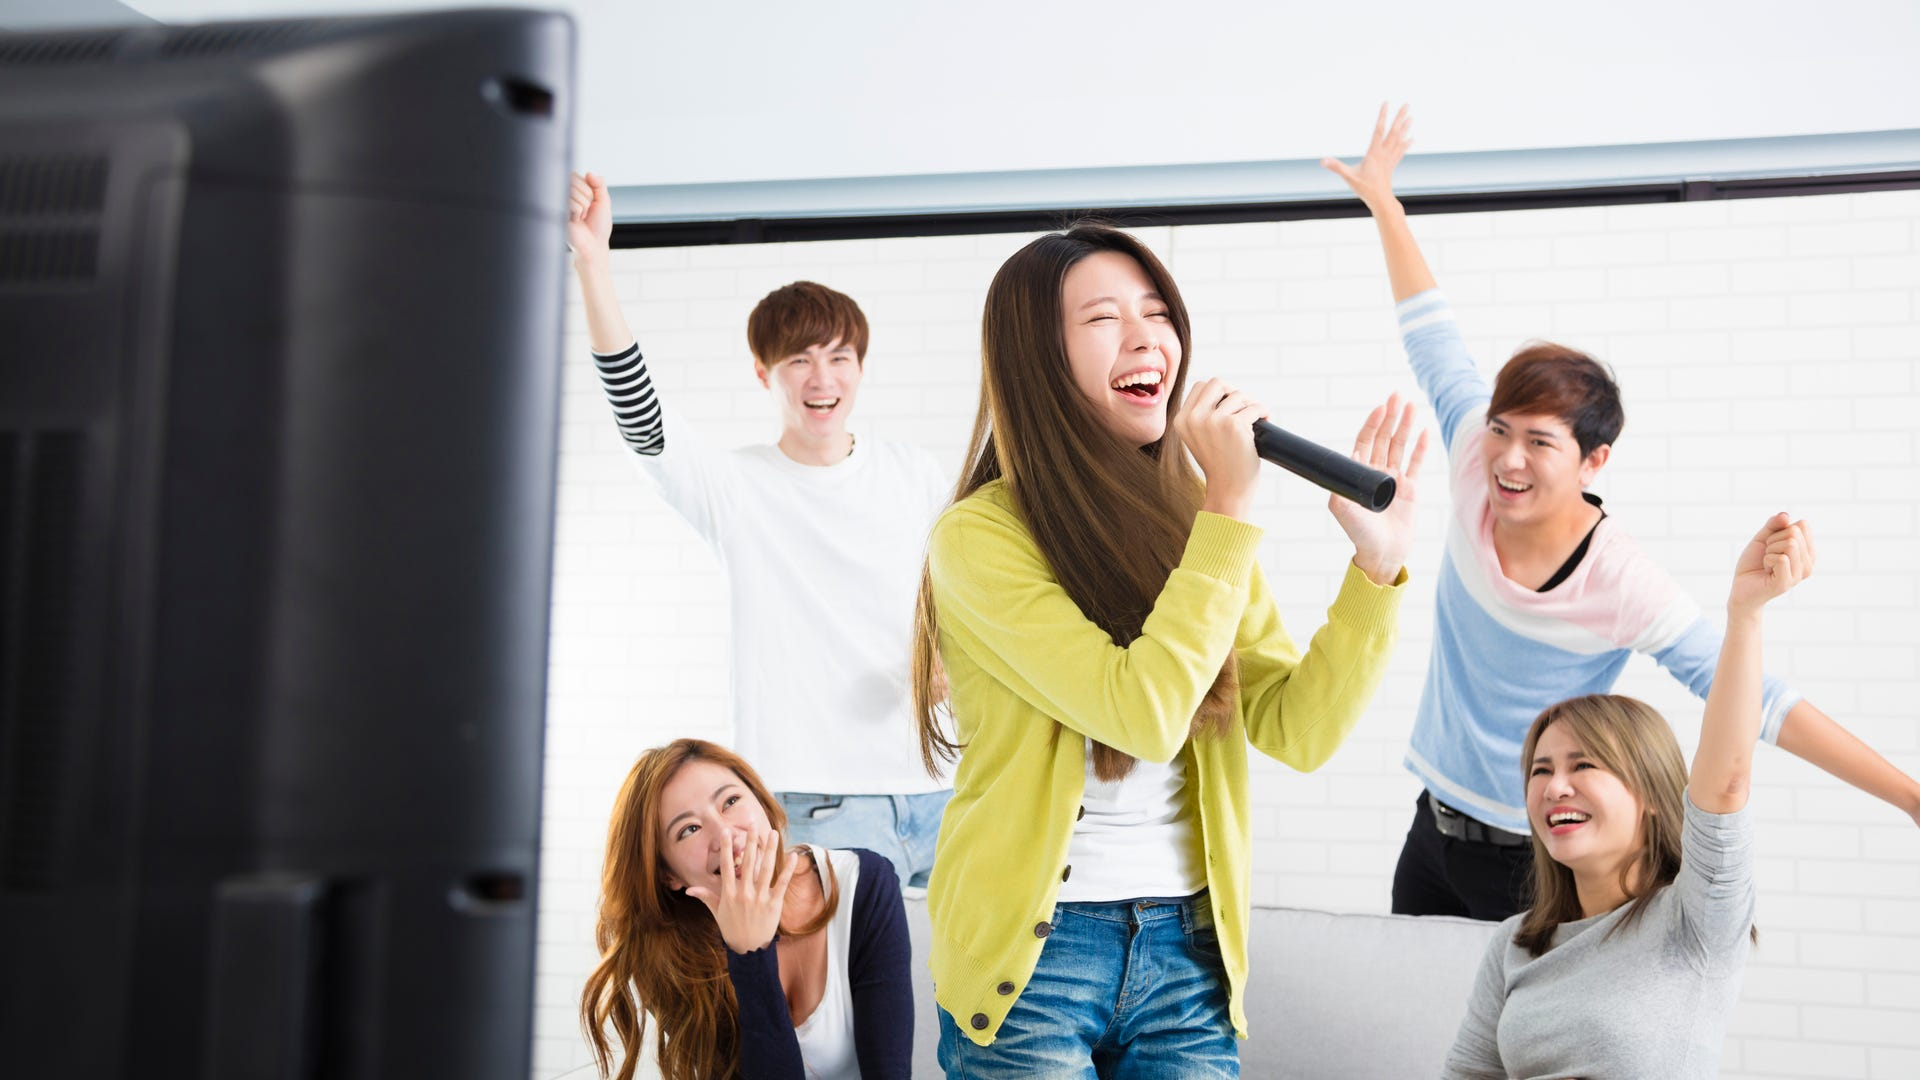 A woman holds a mic up to her face as she sings karaoke with her friends dancing around her.